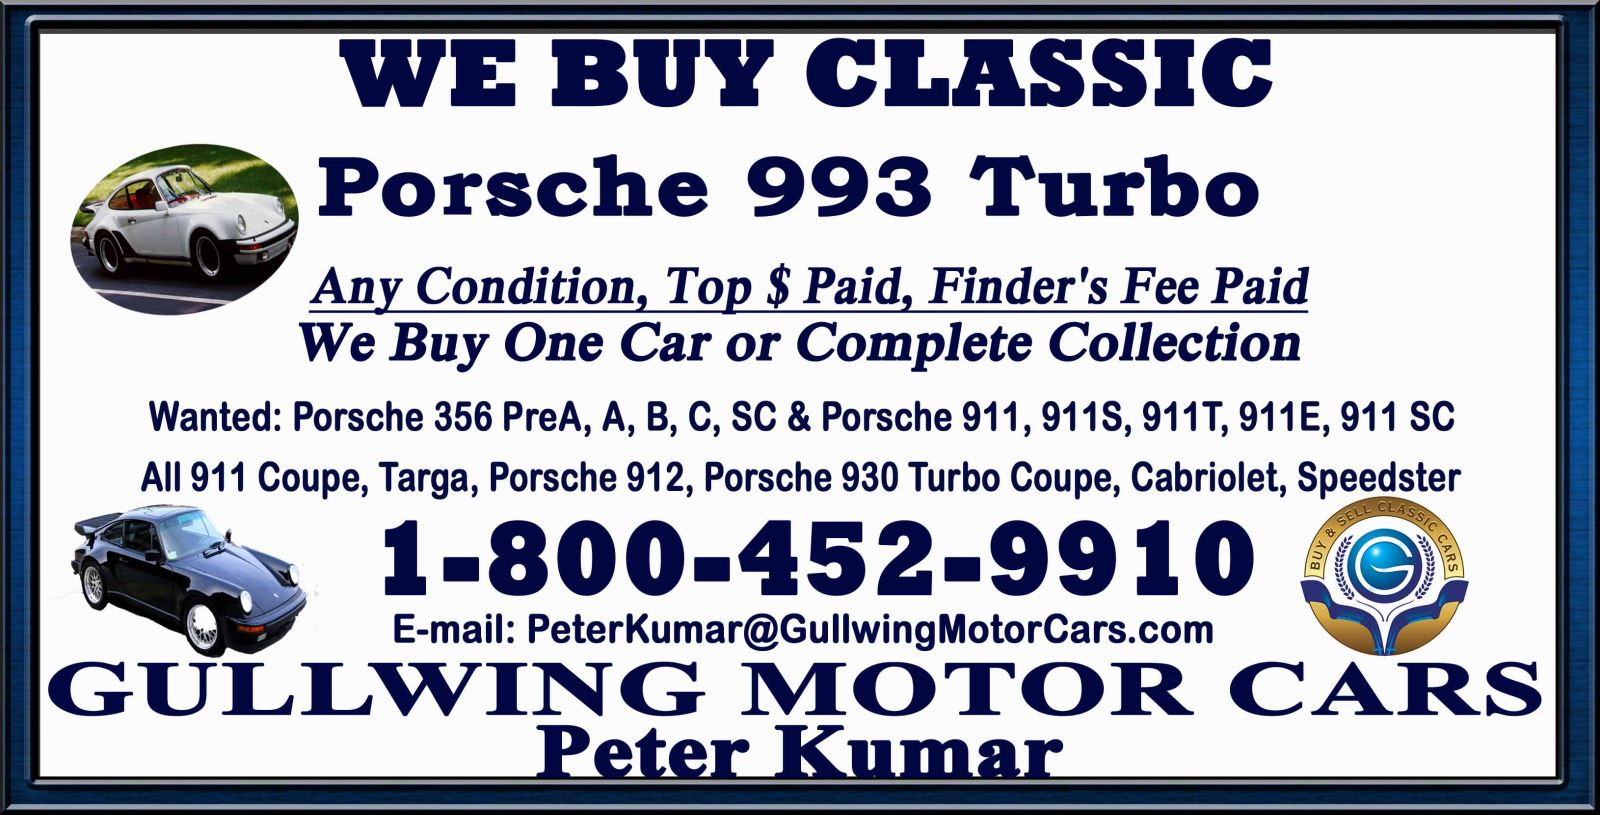 Classic Porsche 993 for sale, we buy vintage Porsche 993. Call Peter Kumar. Gullwing Motor